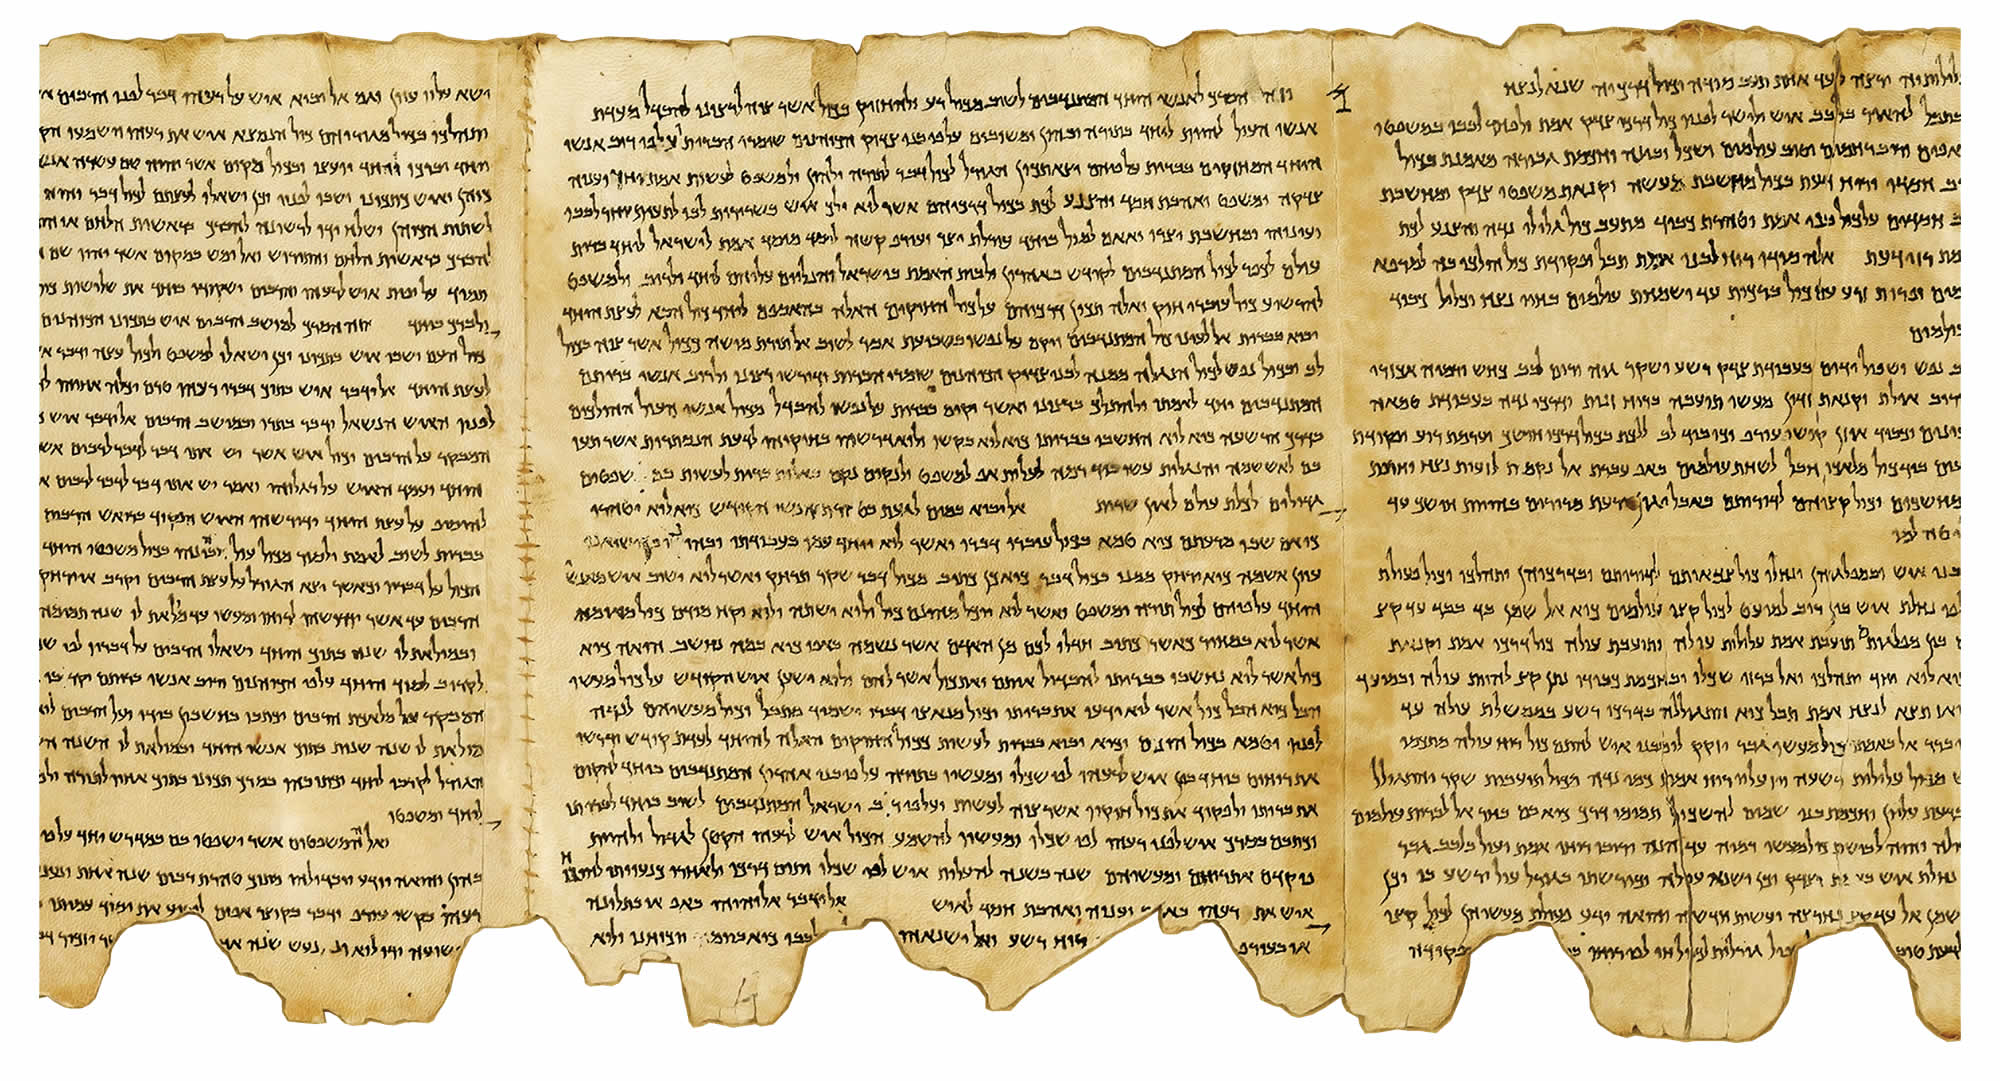 Fragments from The Dead Sea Scrolls found in caves near Khirbet Qumran, on the north western shores of the Dead Sea. Some 2000 years old, most were written in Hebrew on parchment, with a smaller number in Aramaic or Greek.